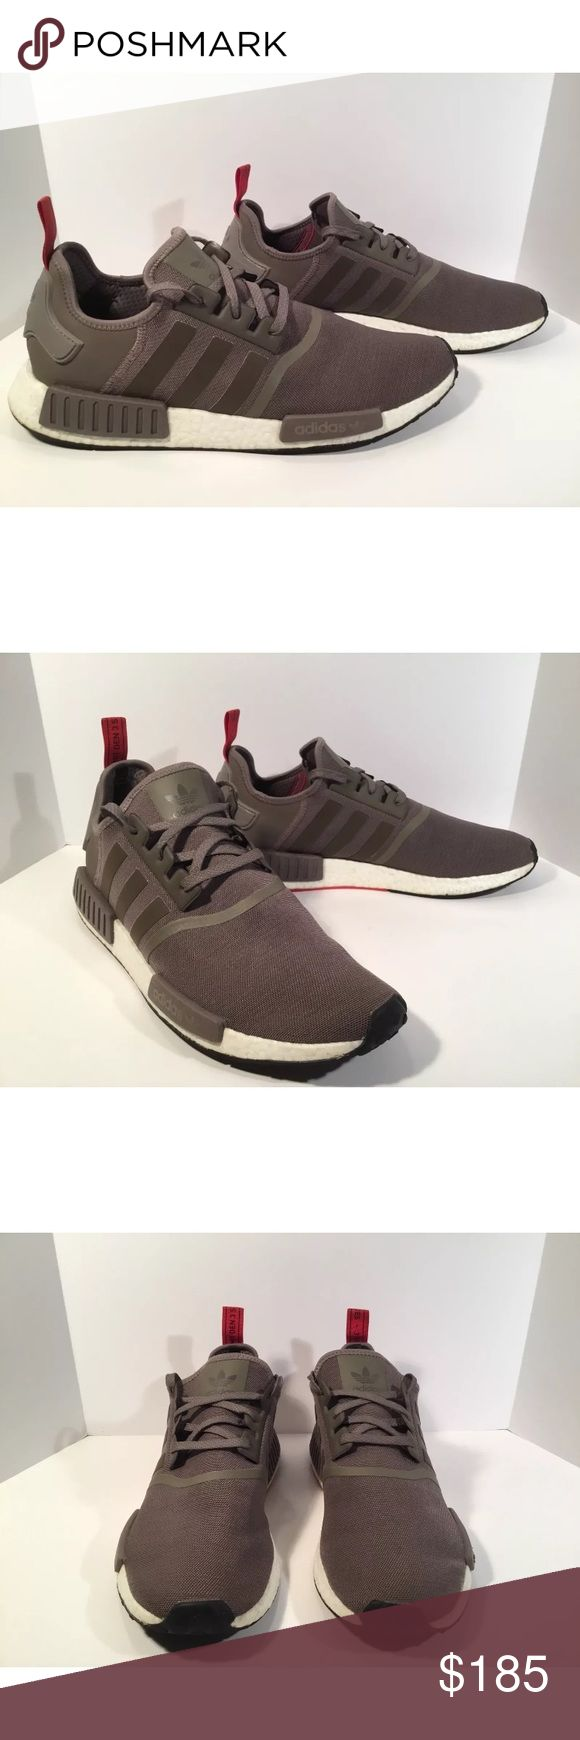 Adidas NMD R1 Texh Earth Brown Item details:   -adidas brand  -in great condition  -Men's Size 14  -brown, red and white  -boost technology  -I ship next day  -nmd R1   Please let me know if you have any questions. adidas Shoes Athletic Shoes